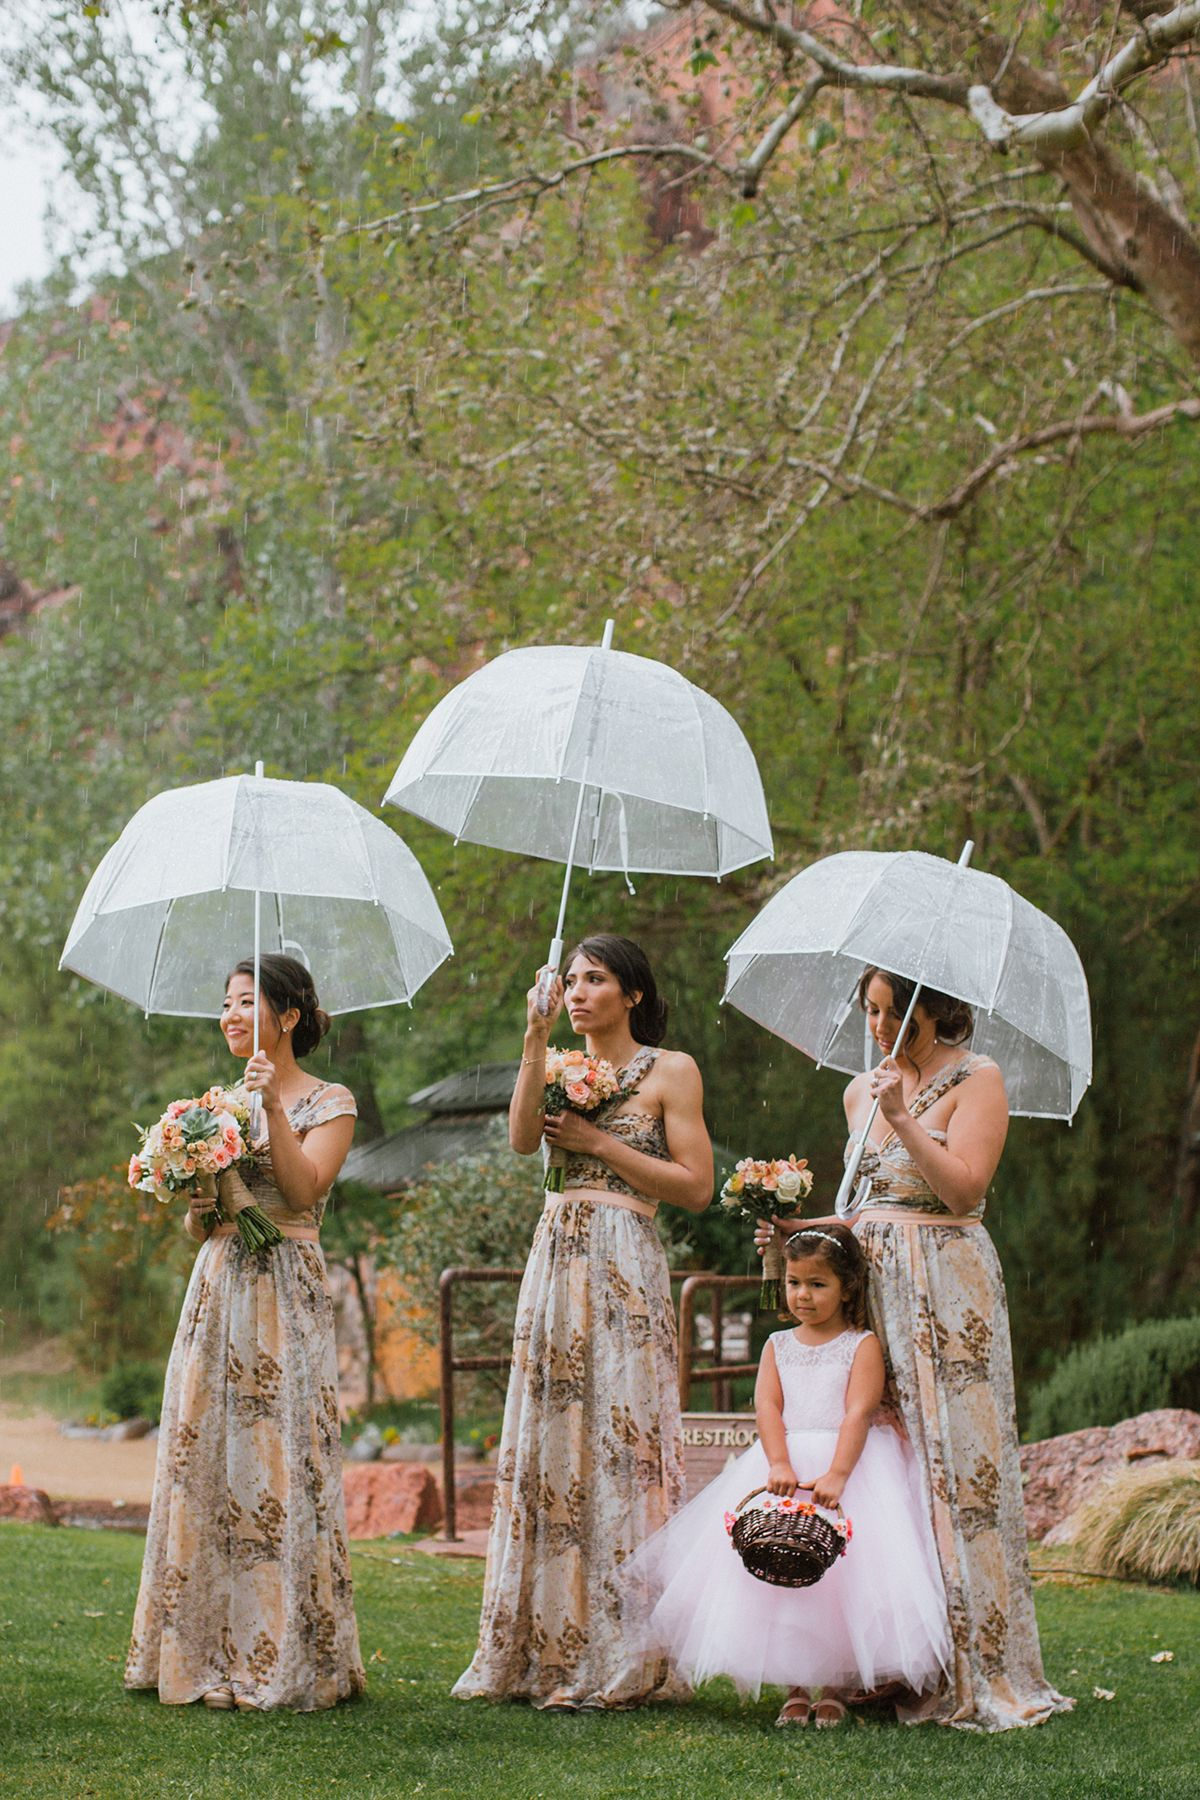 cute clear umbrellas make a fun statement on your rainy wedding day